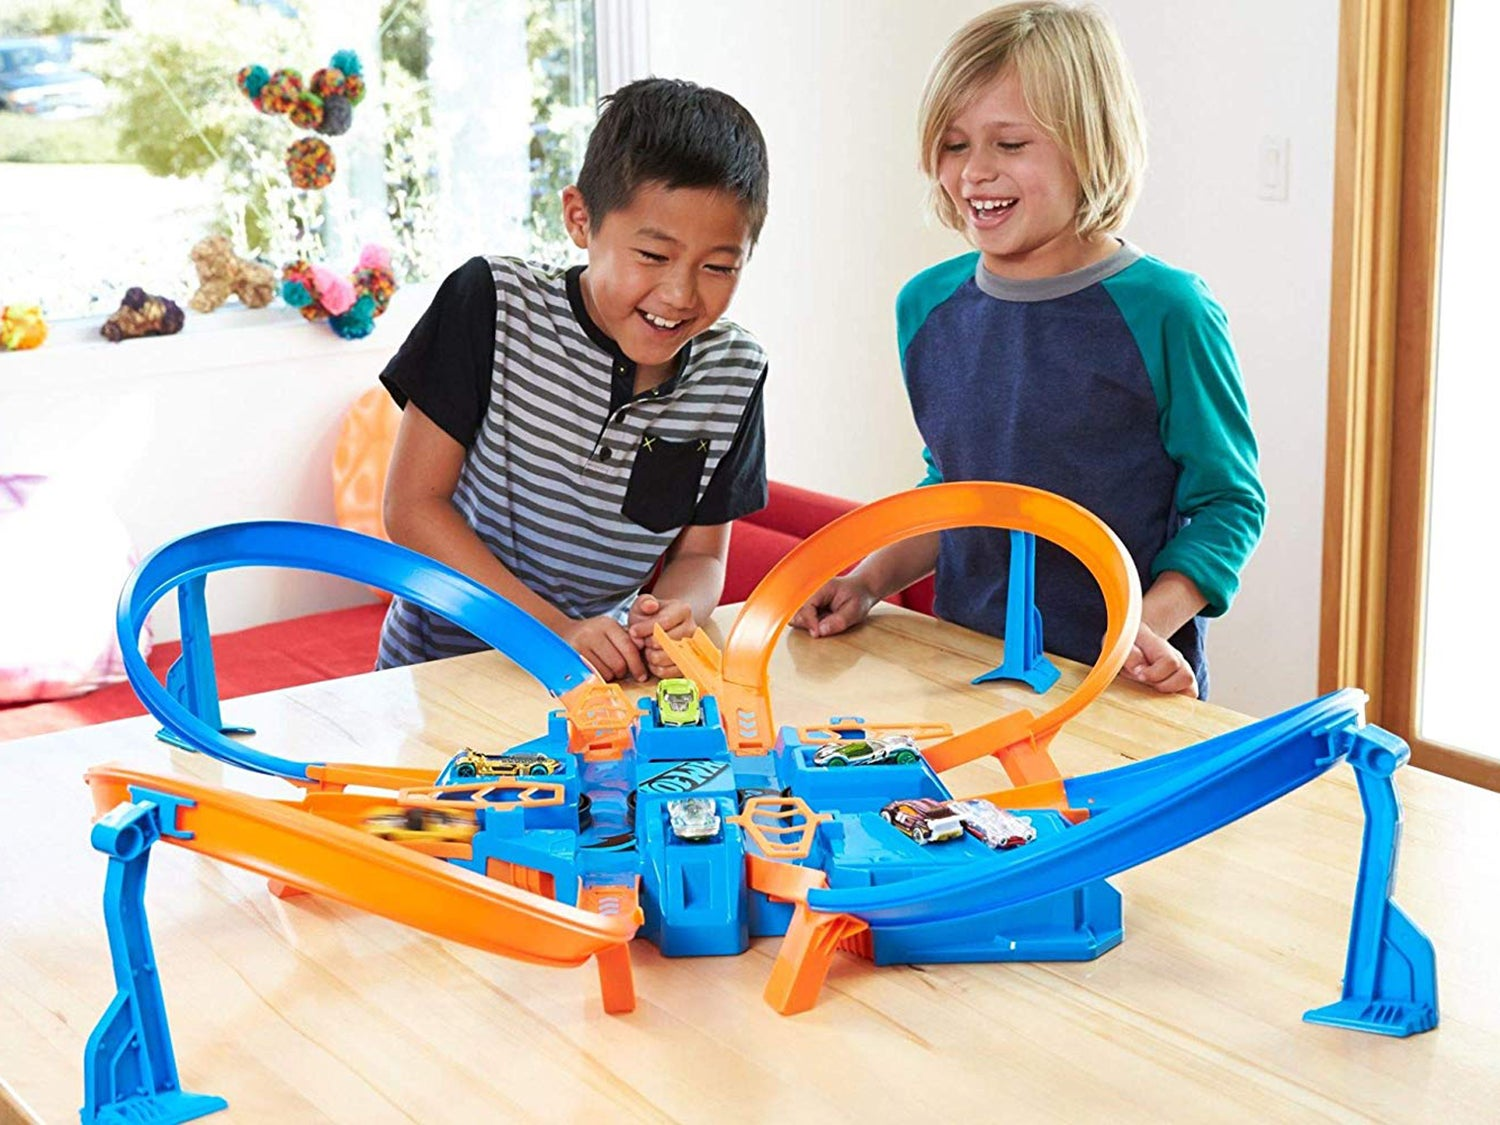 kids playing with hot wheels track